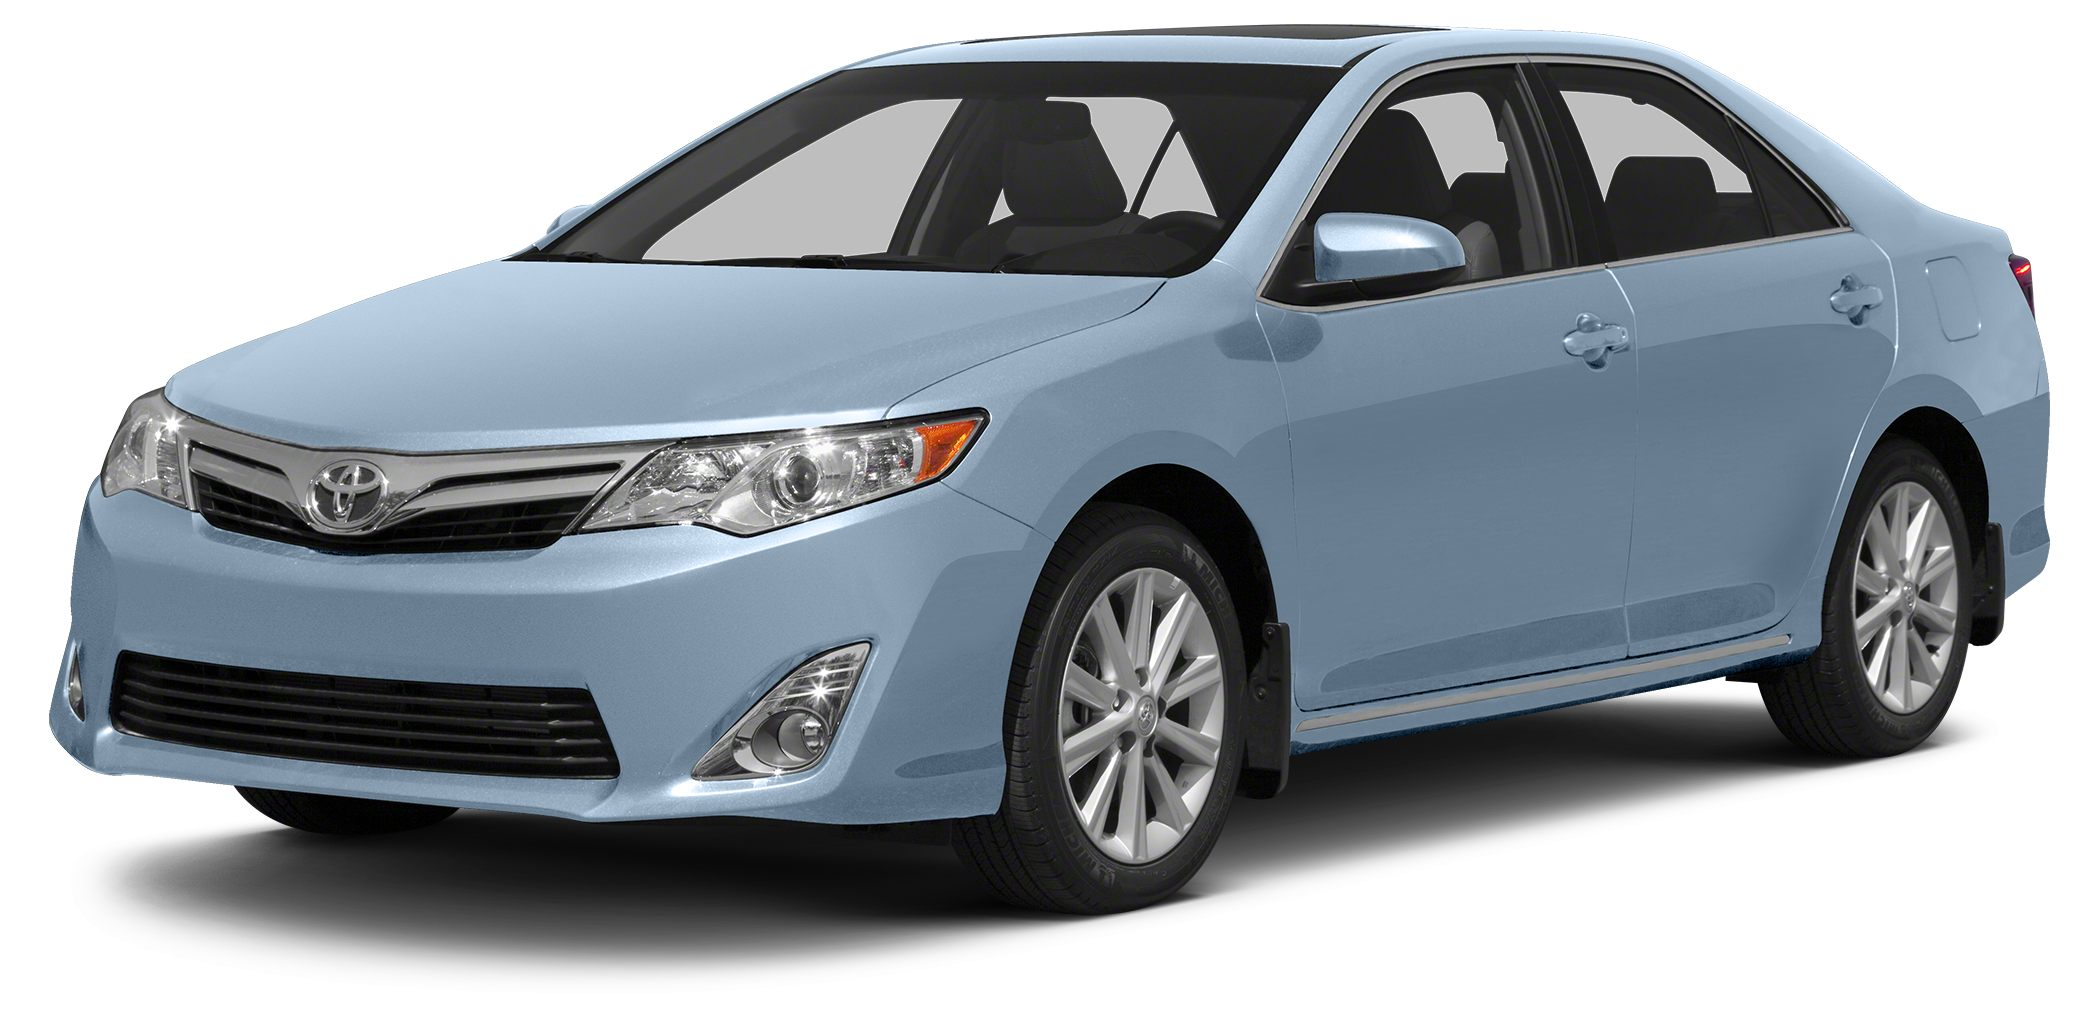 2013 Toyota Camry LE LE trim EPA 35 MPG Hwy25 MPG City PRICED TO MOVE 200 below Kelley Blue B